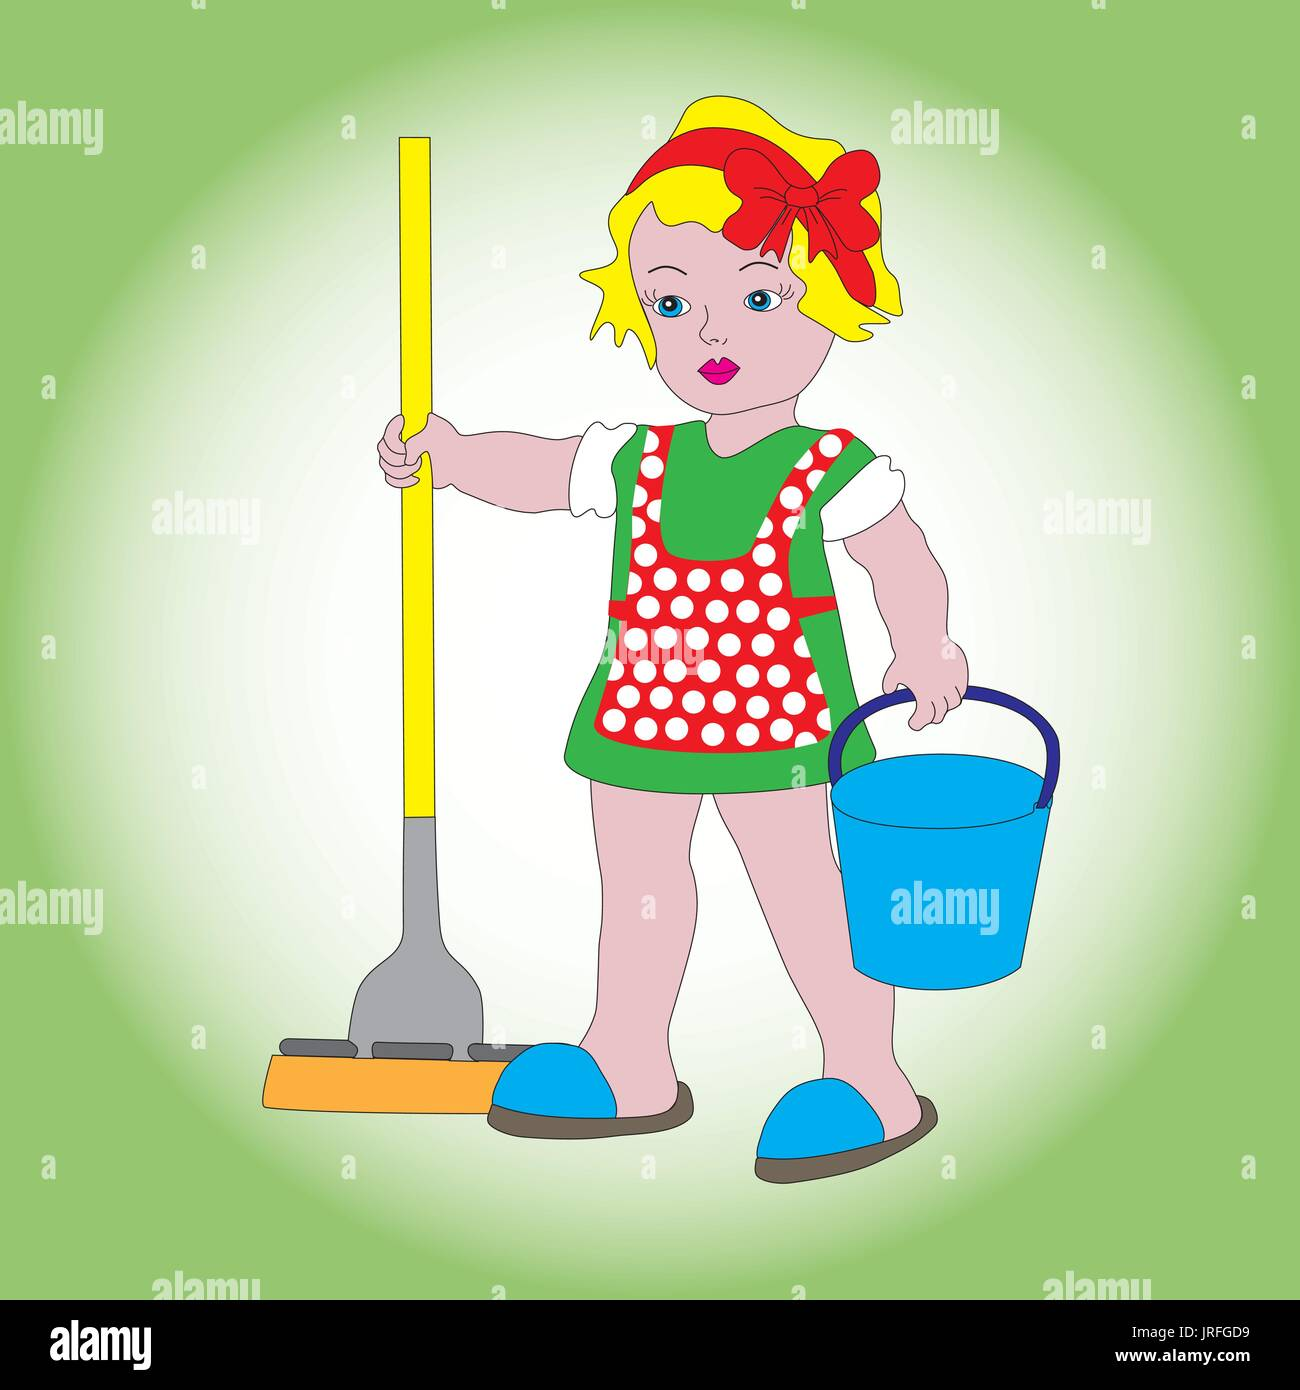 A little sweet girl with a bucket and a mop for cleaning. A symbol of cleanliness, order and cleaning. - Stock Vector